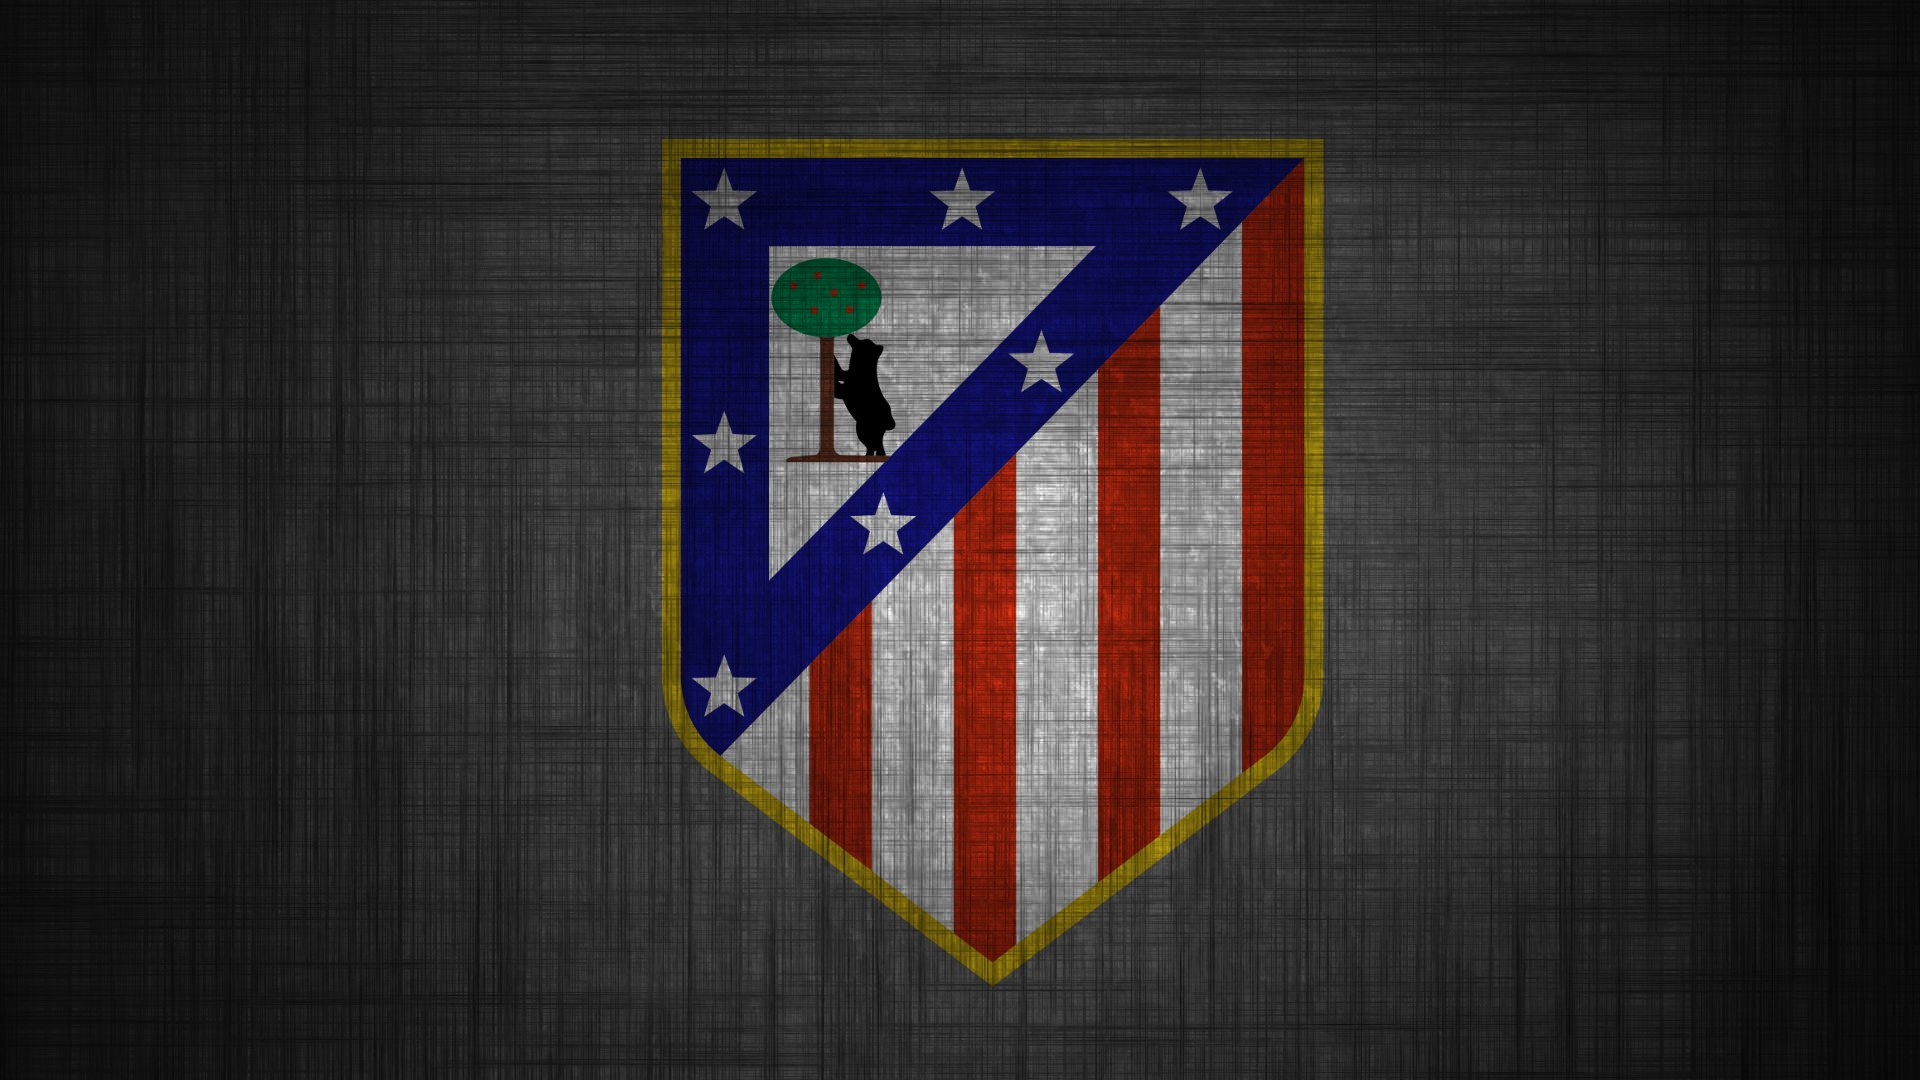 Atletico Madrid Wallpaper and Windows 10 Theme All for Windows 10 1920x1080